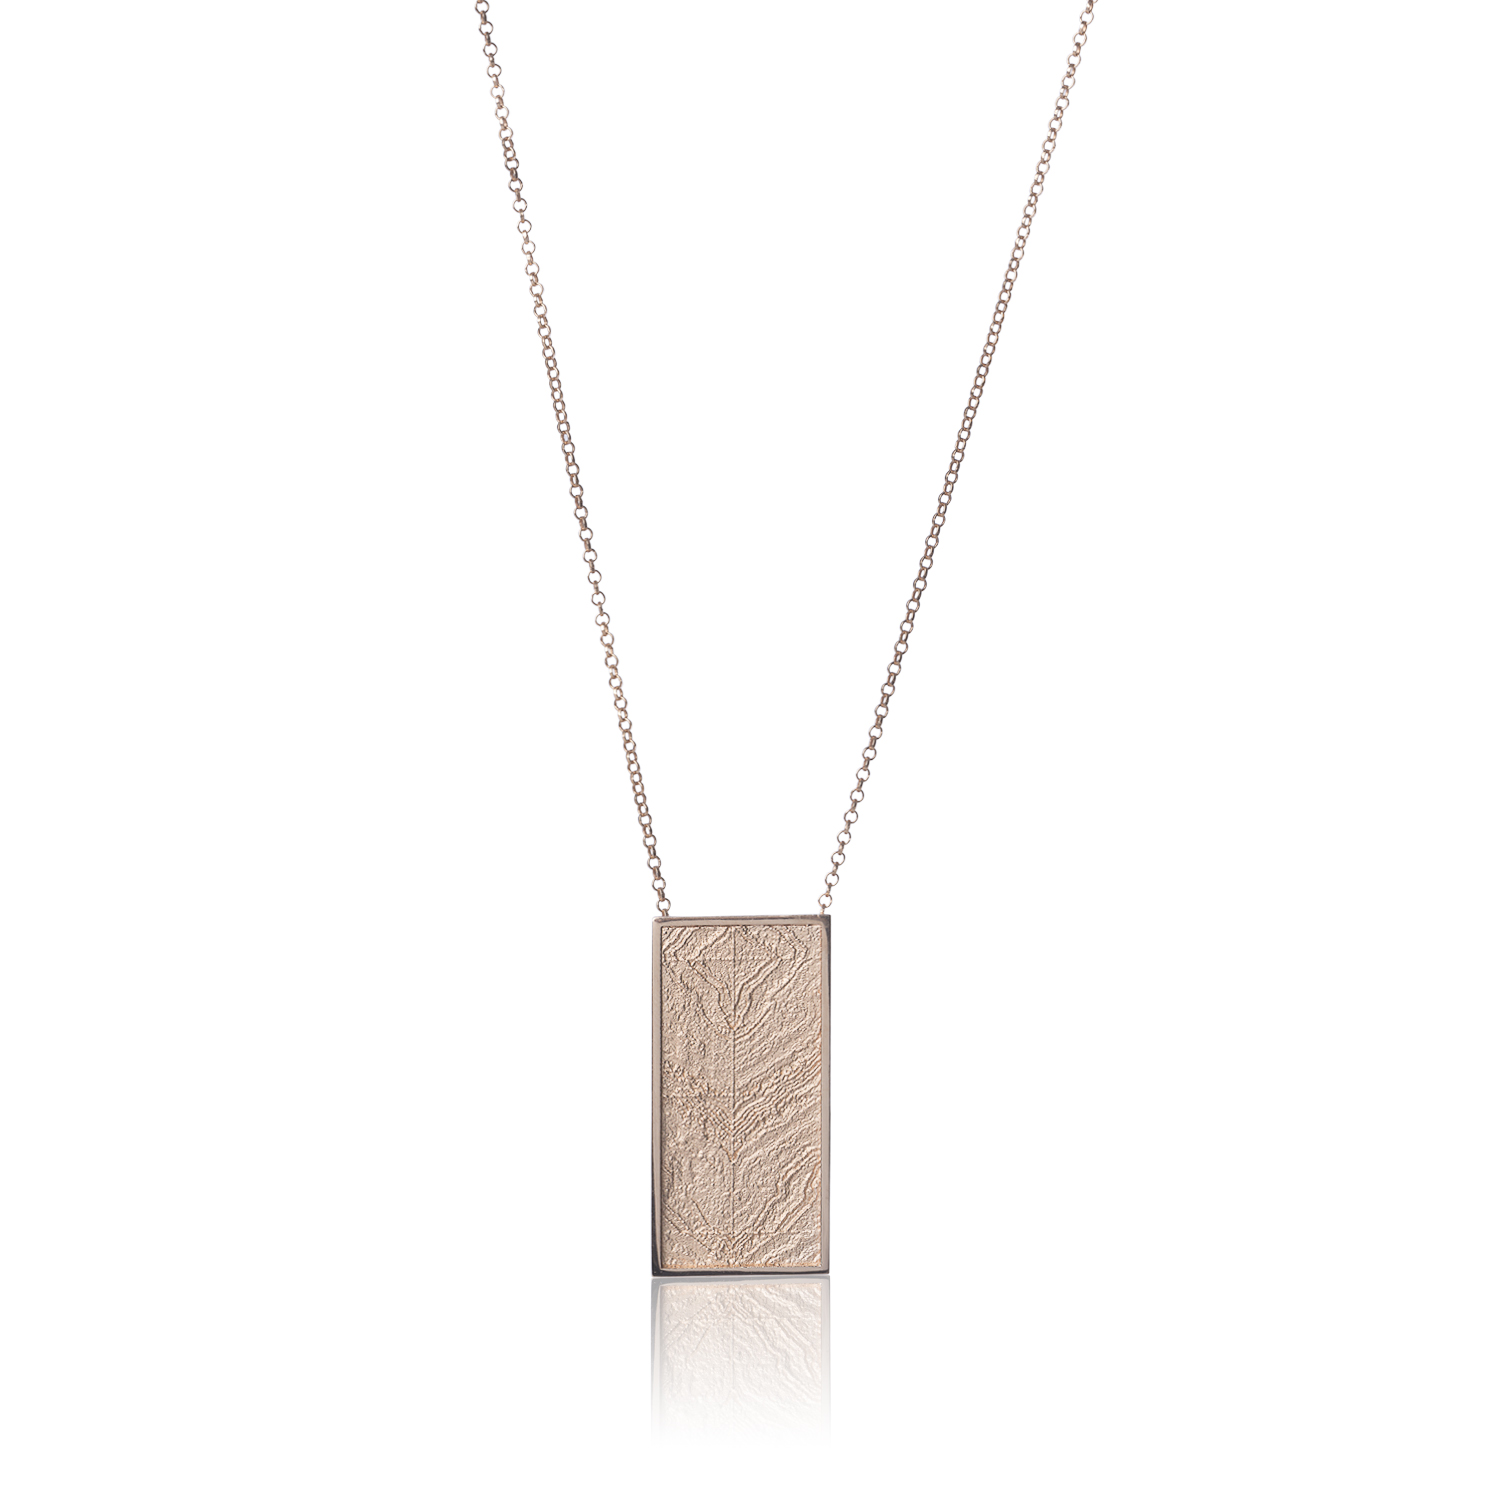 Mies rose gold plated silver pendant